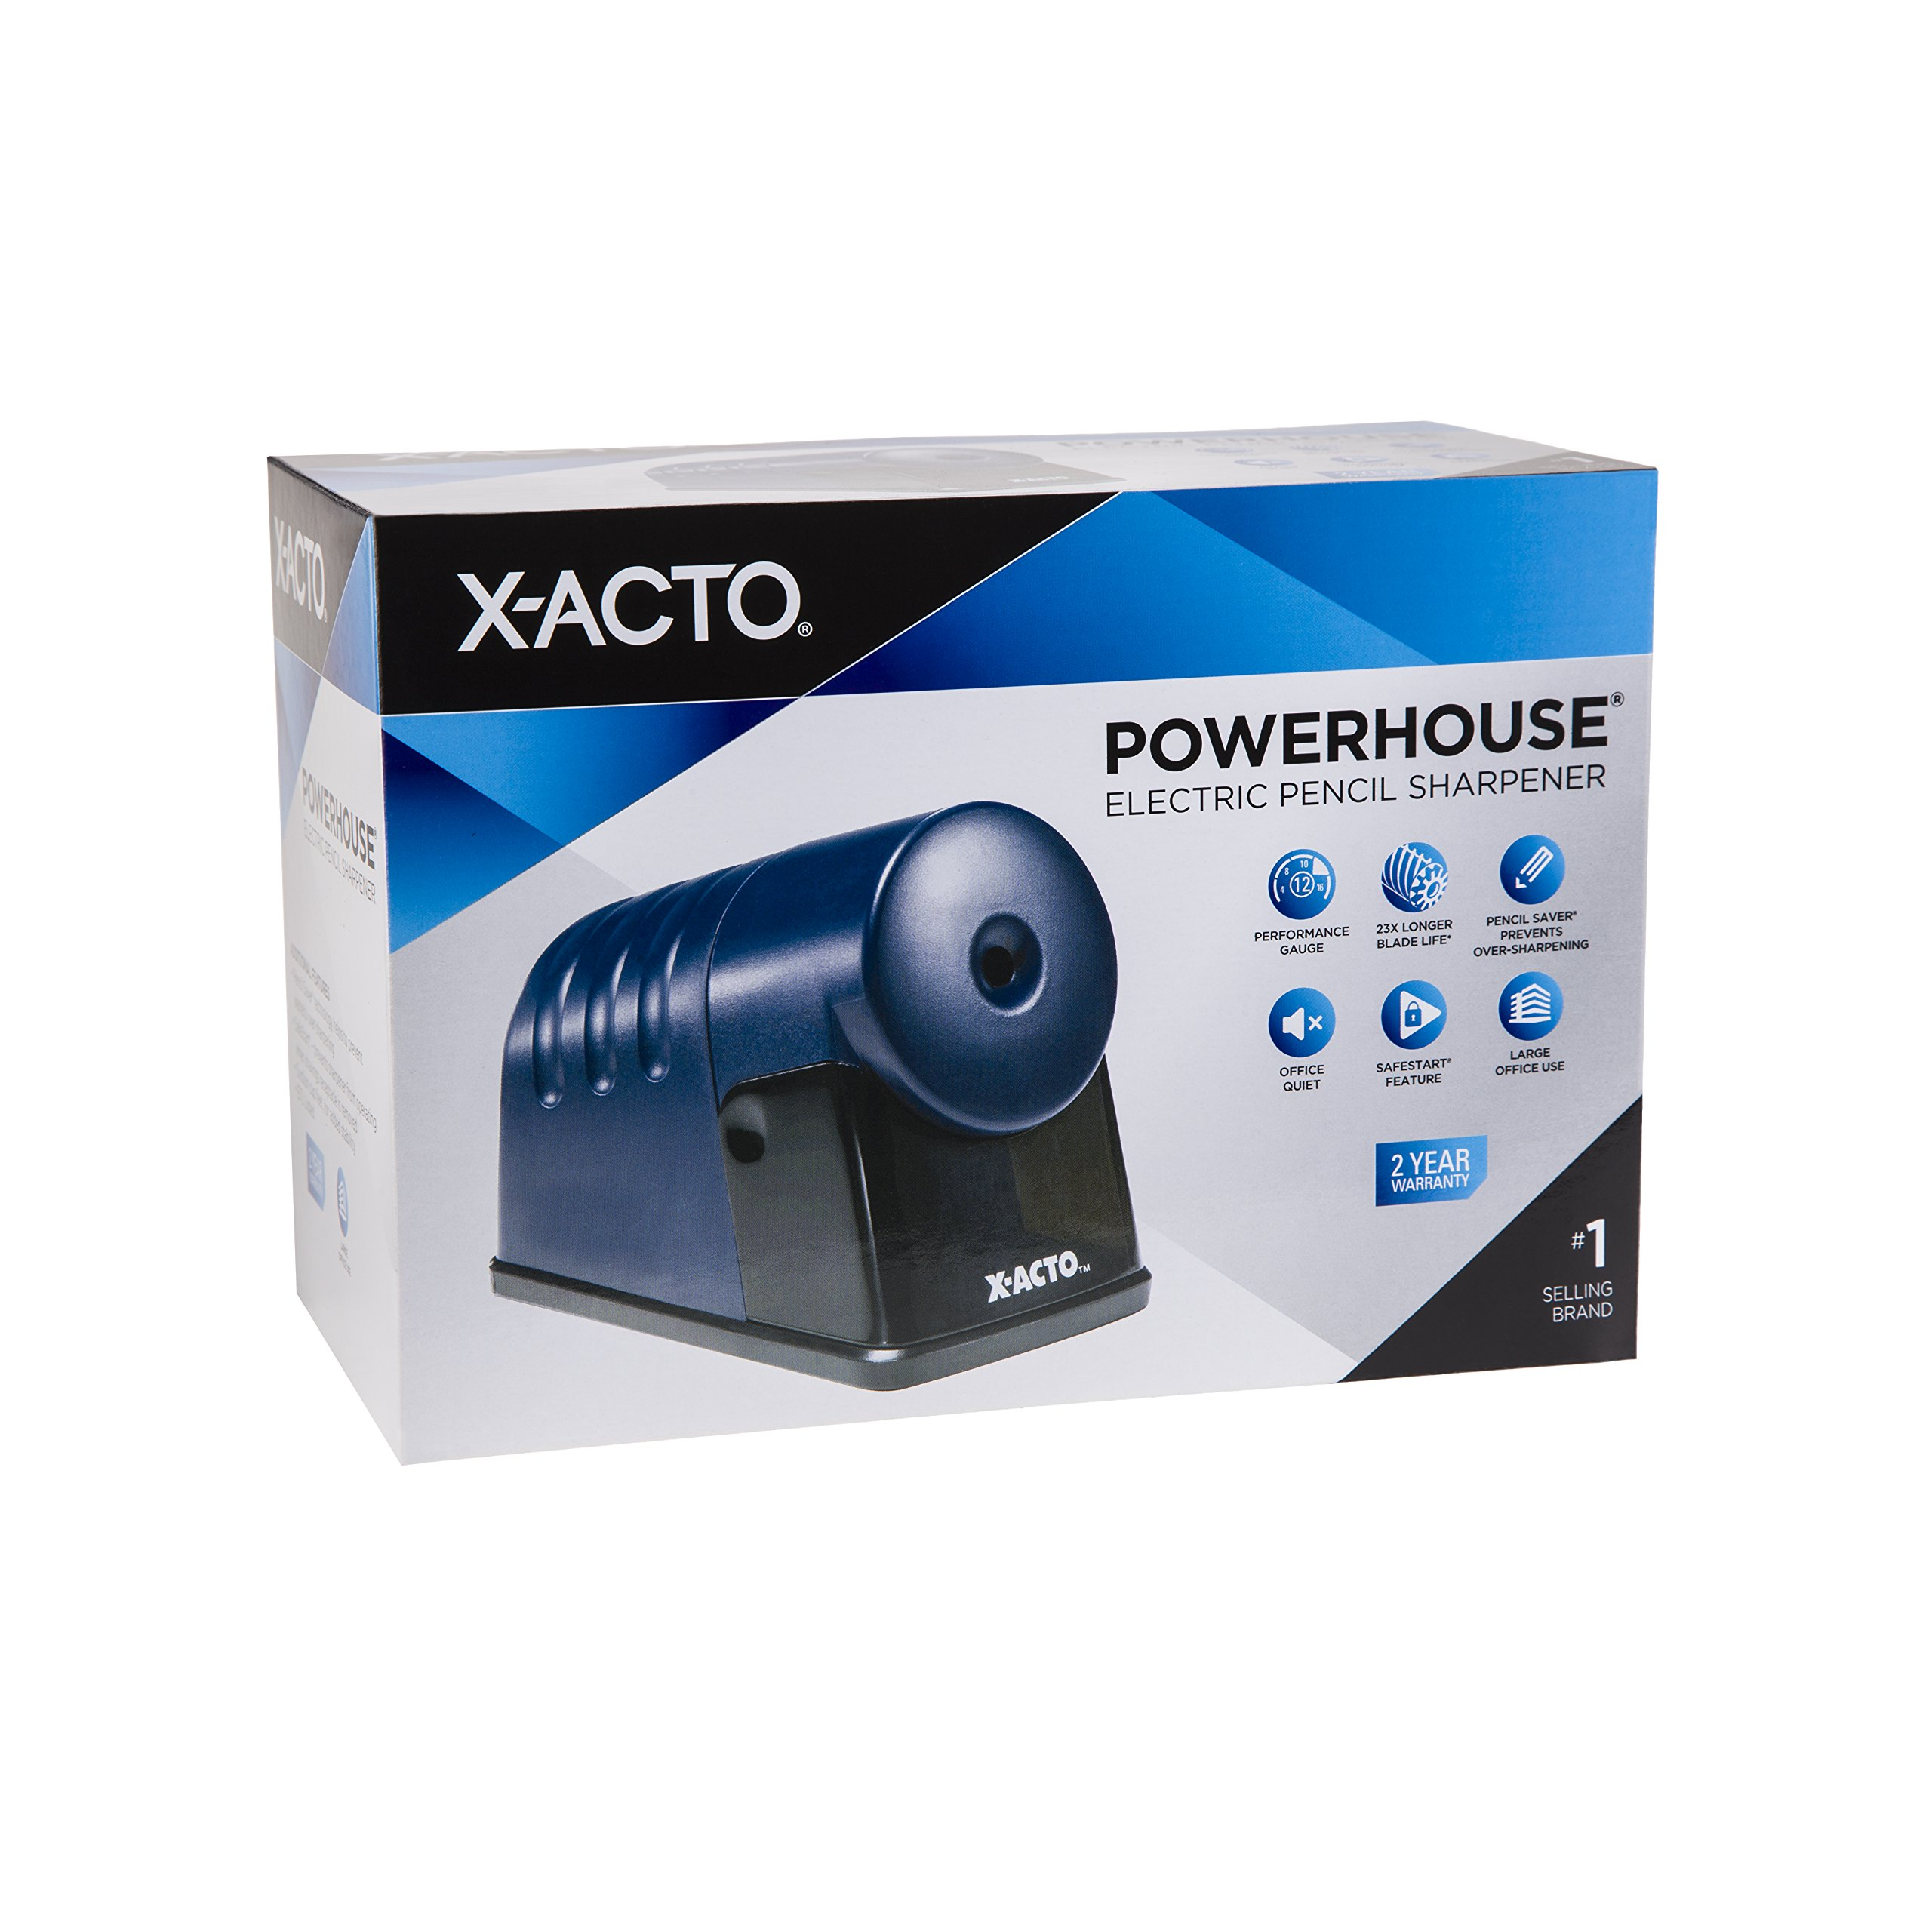 X-ACTO Powerhouse Electric Pencil Sharpener, Navy Blue by X-Acto (Image #5)